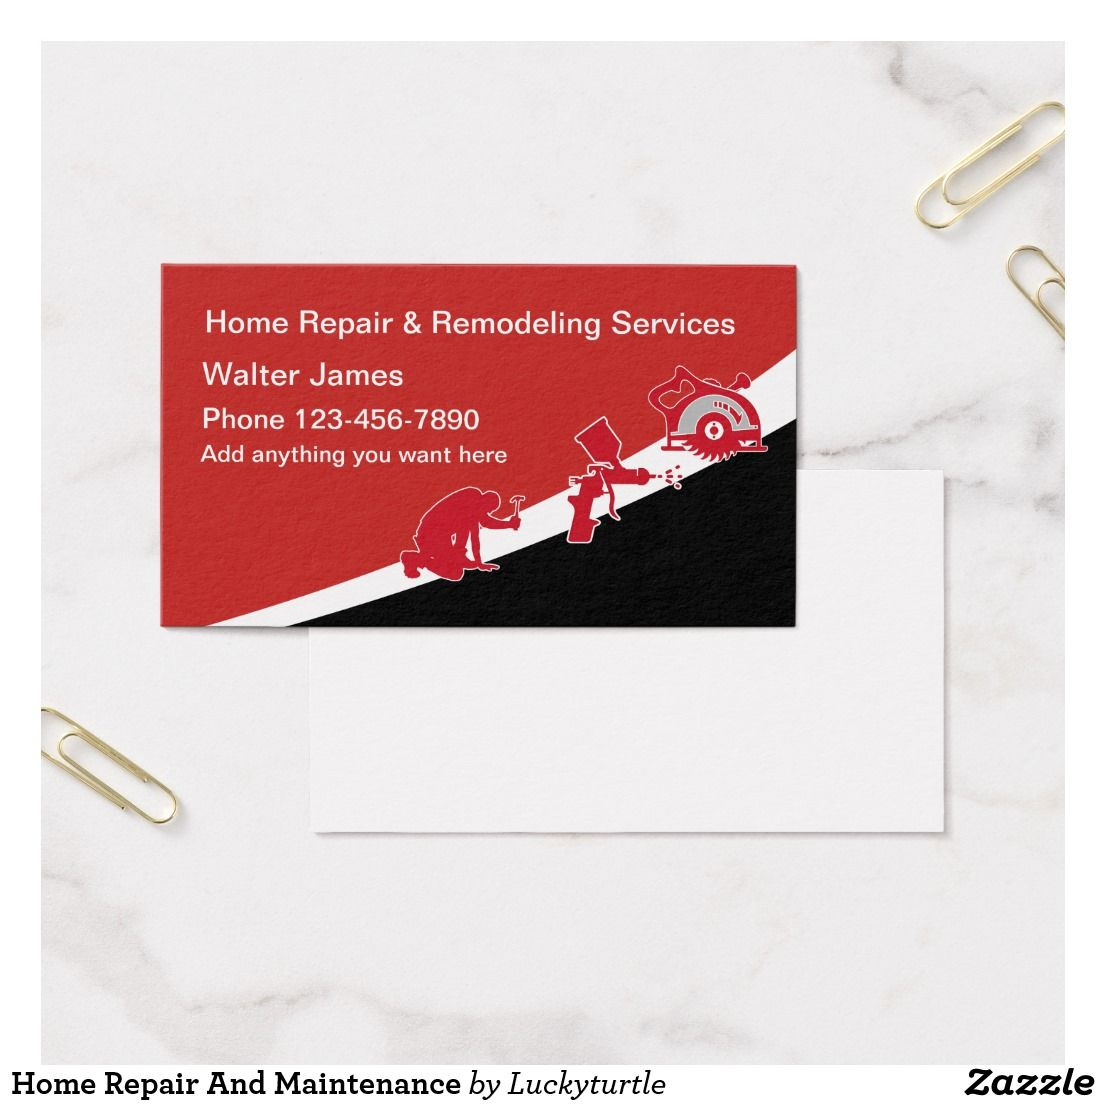 Home repair business cards images free business cards home repair and maintenance business card business pinterest home repair and maintenance business card magicingreecefo images magicingreecefo Image collections